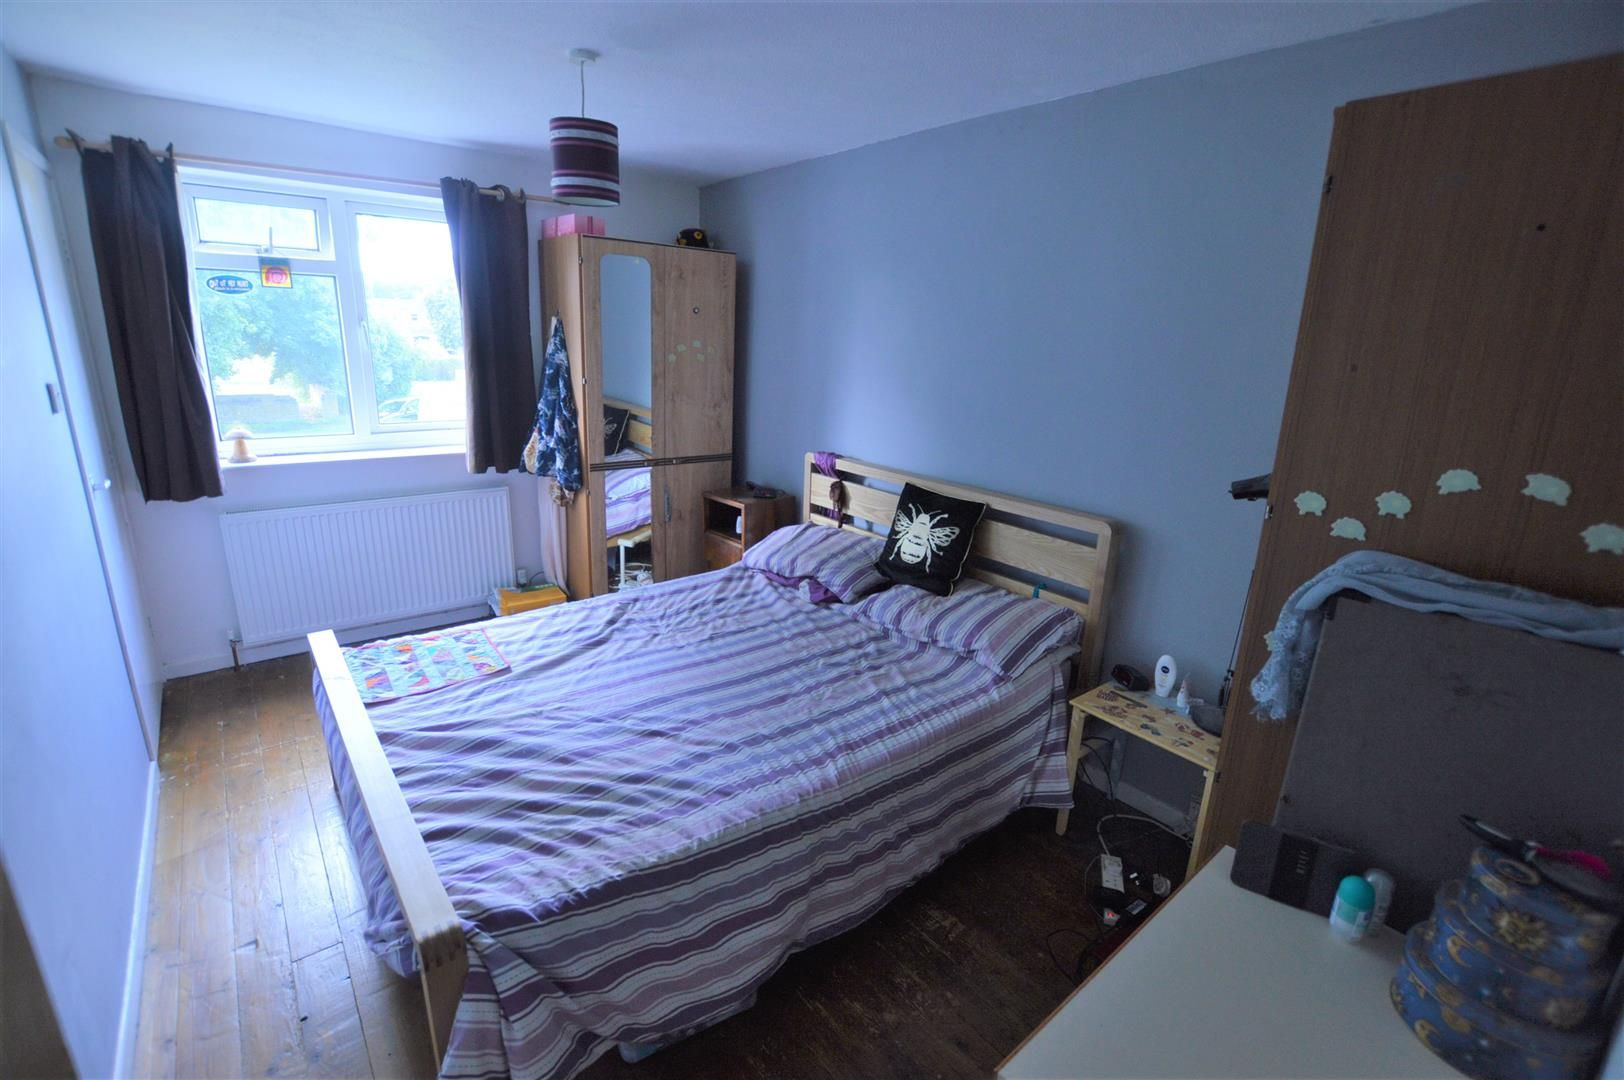 2 bed end-of-terrace for sale in Leominster  - Property Image 4